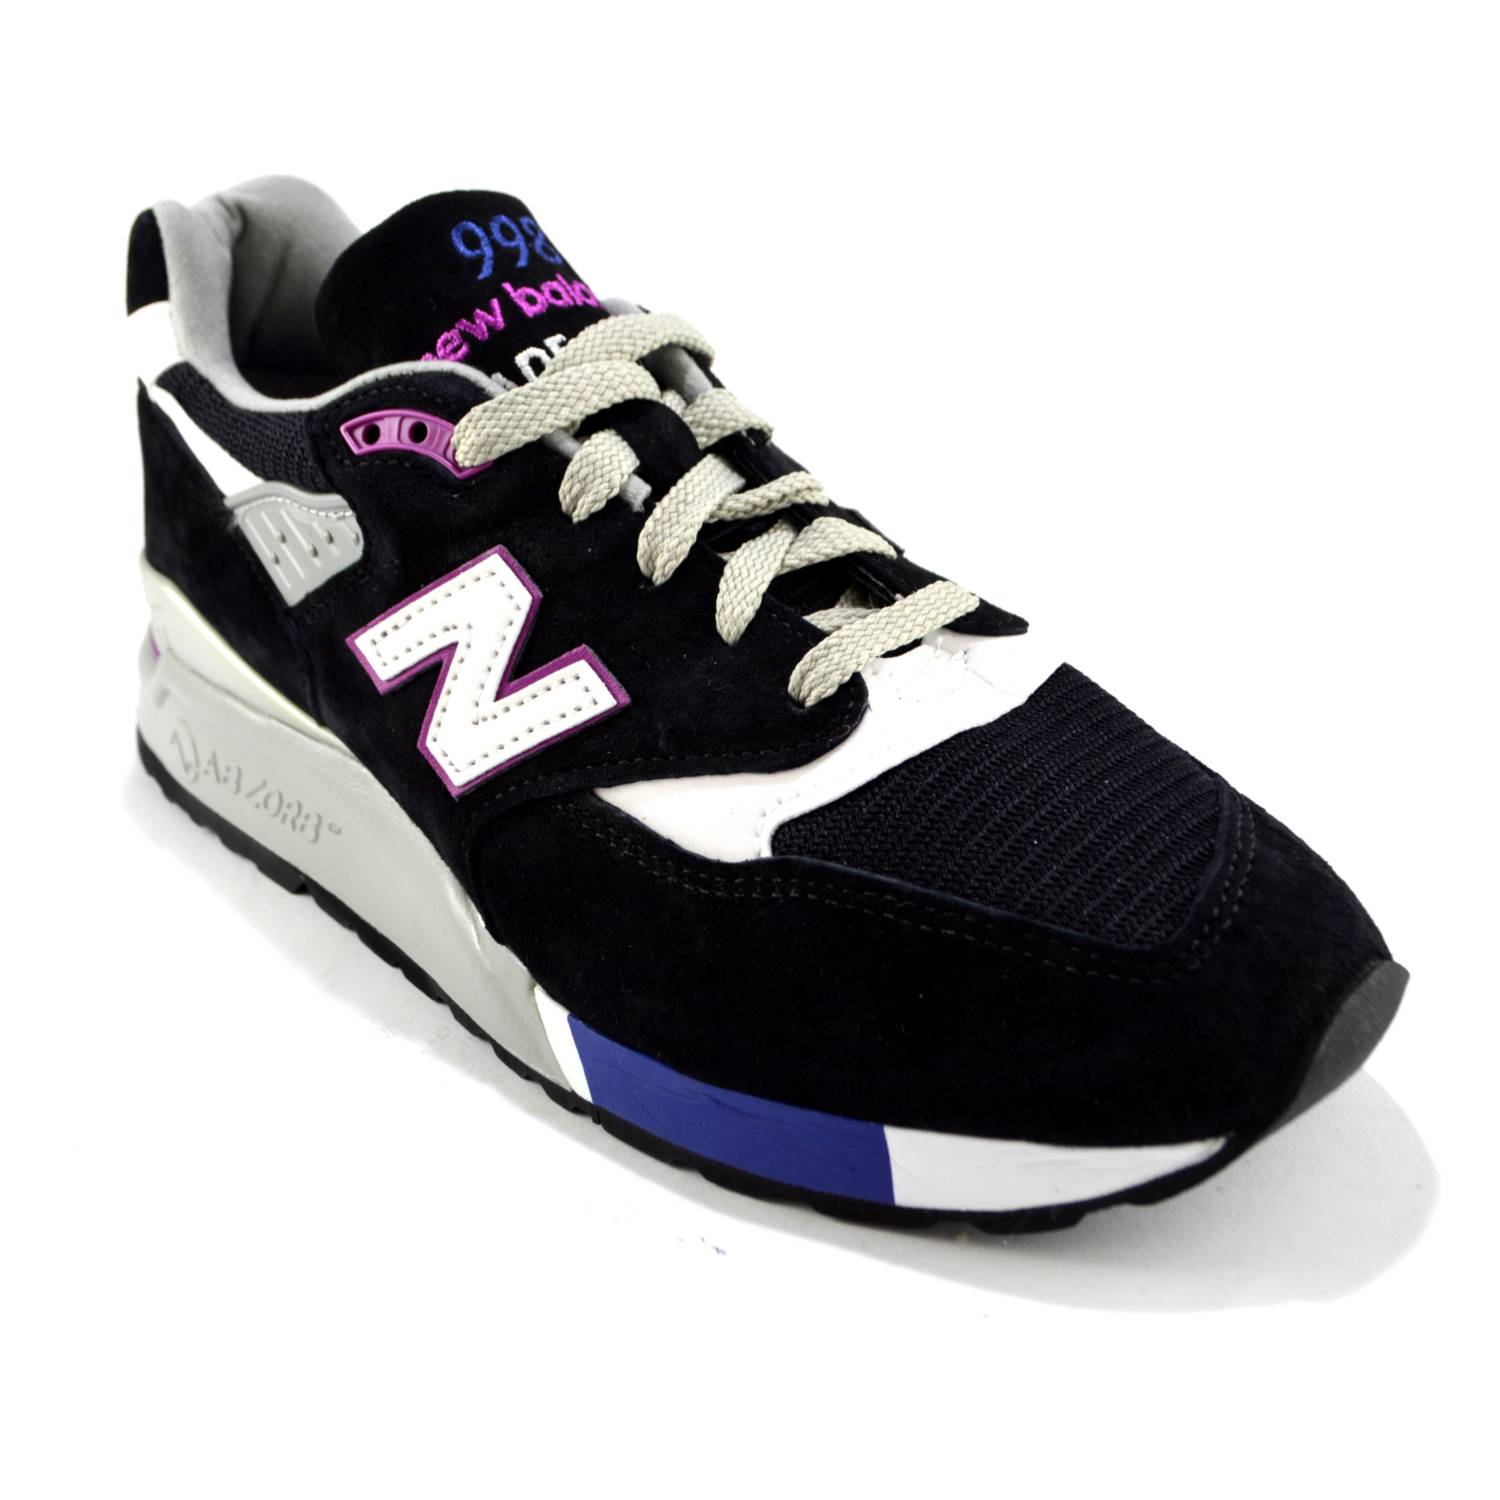 huge selection of 5d082 b405c New Balance 998 BK Made in USA - 247 Italia Style